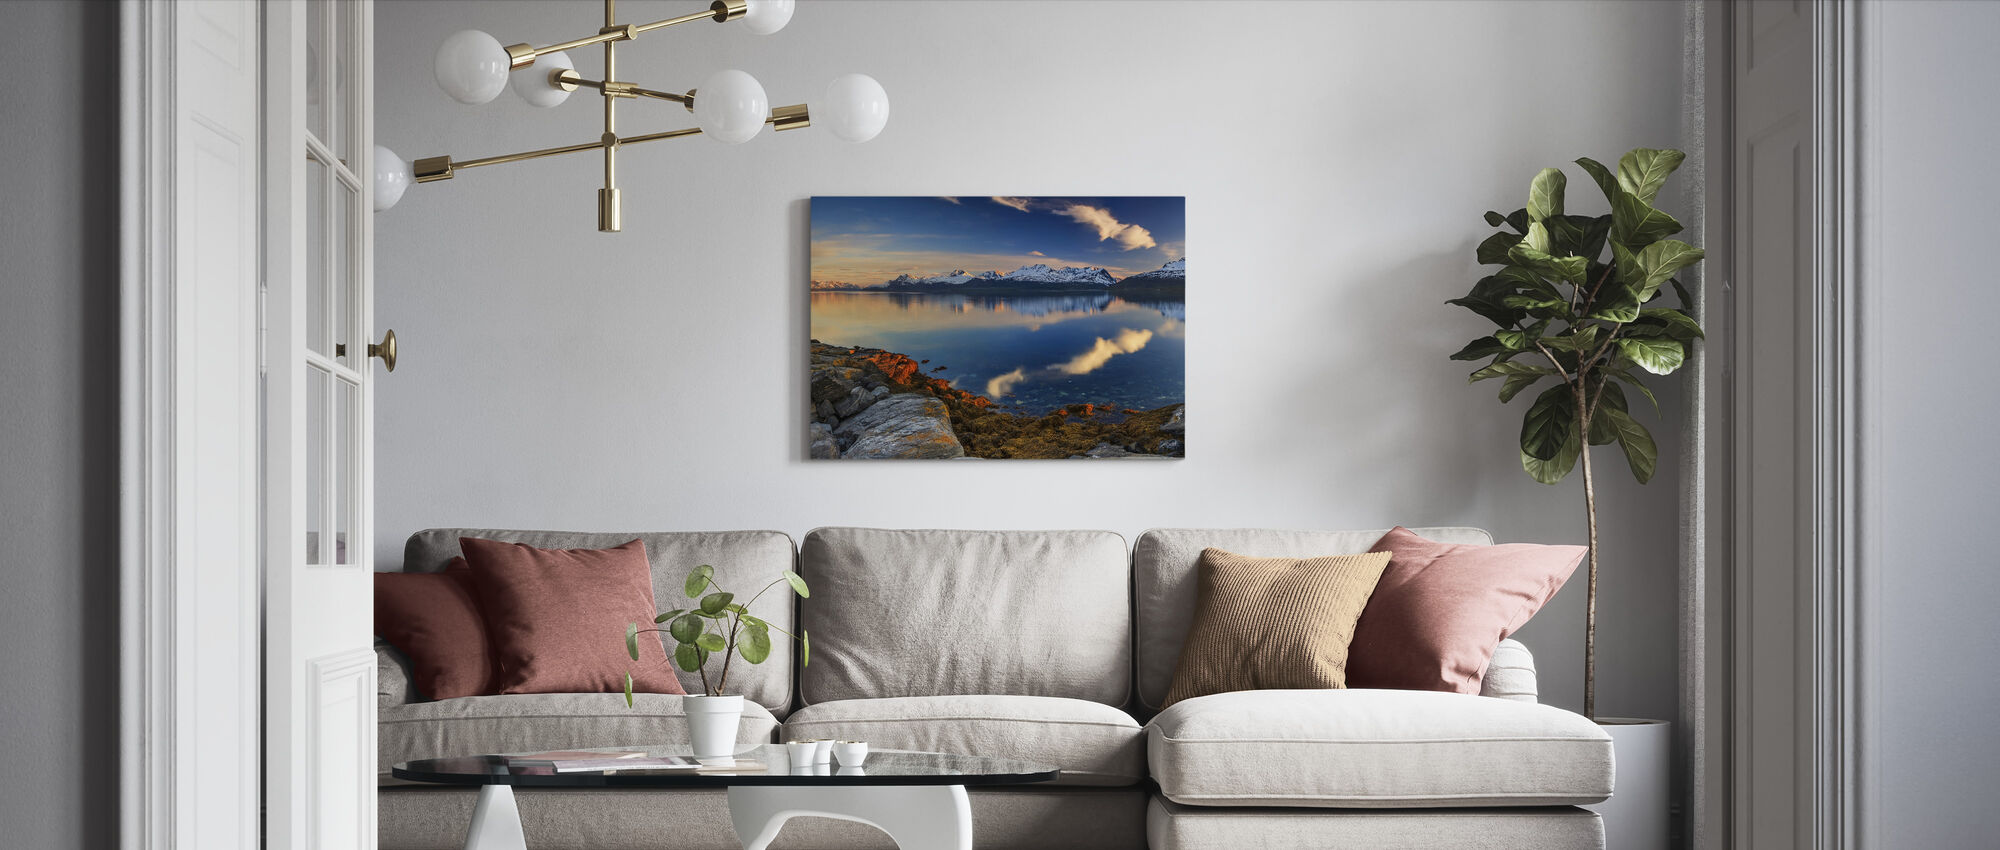 Sunset on the Shore of the Fjord - Canvas print - Living Room